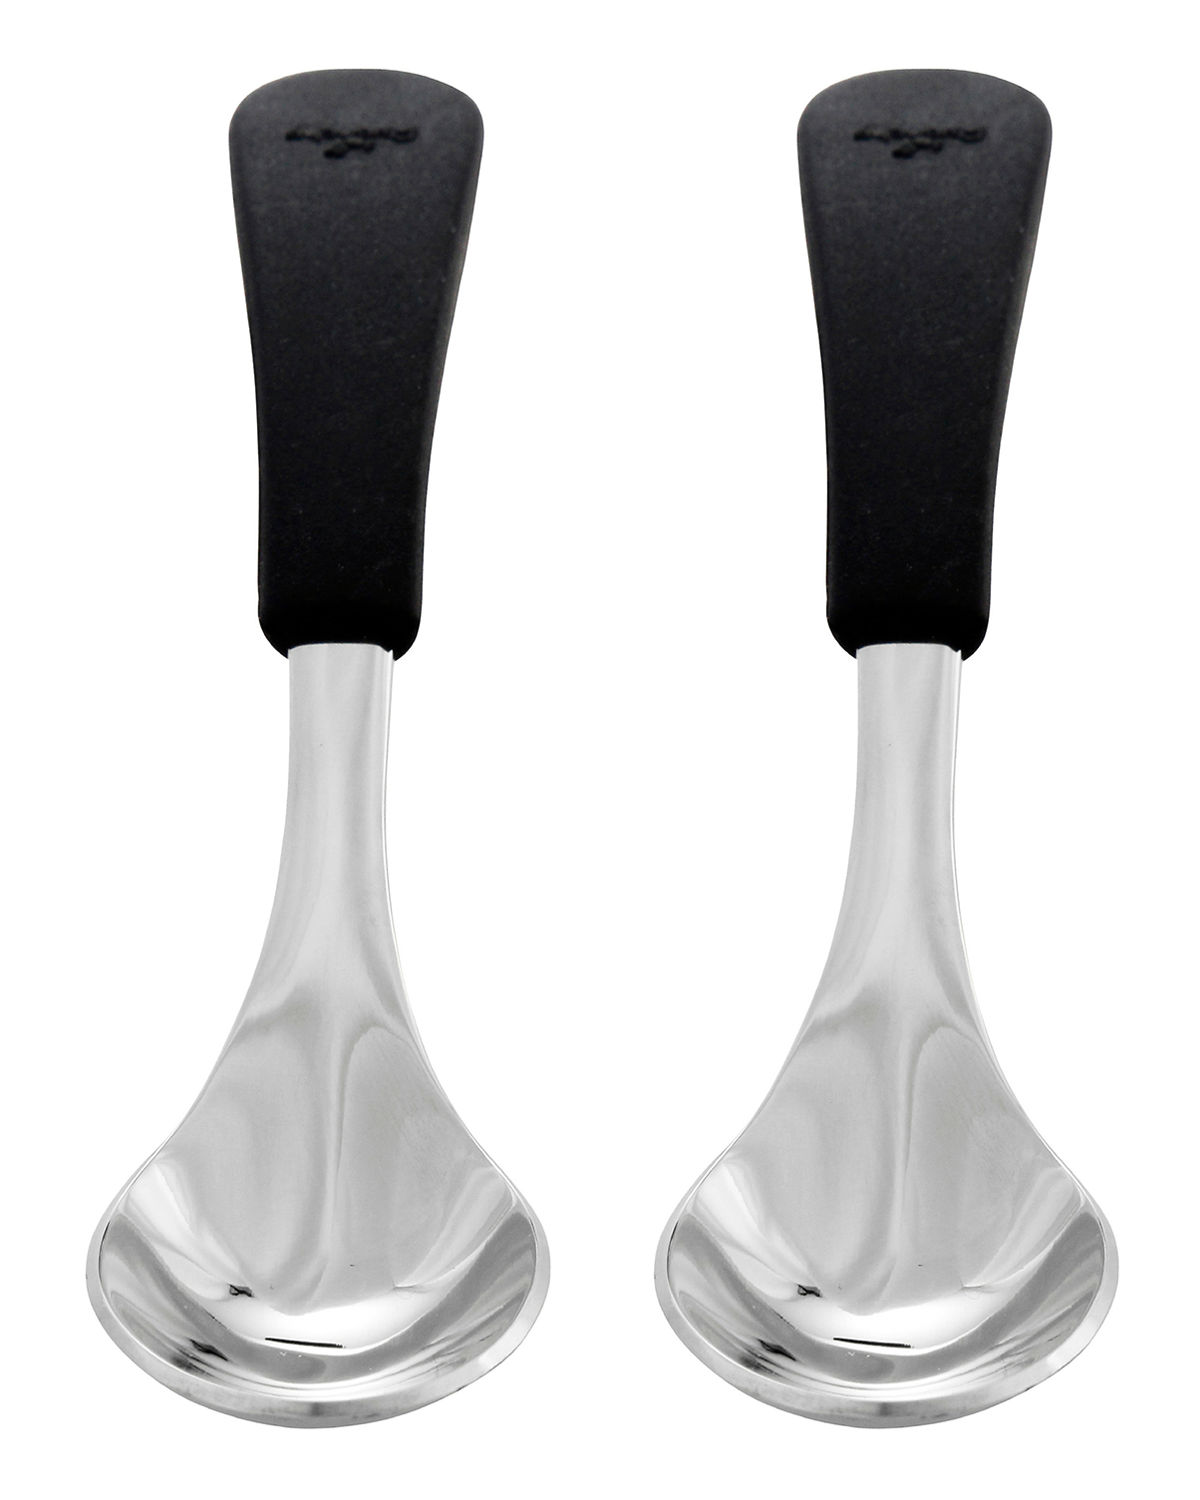 Baby's Stainless Steel & Silicone Spoons, Set of 2